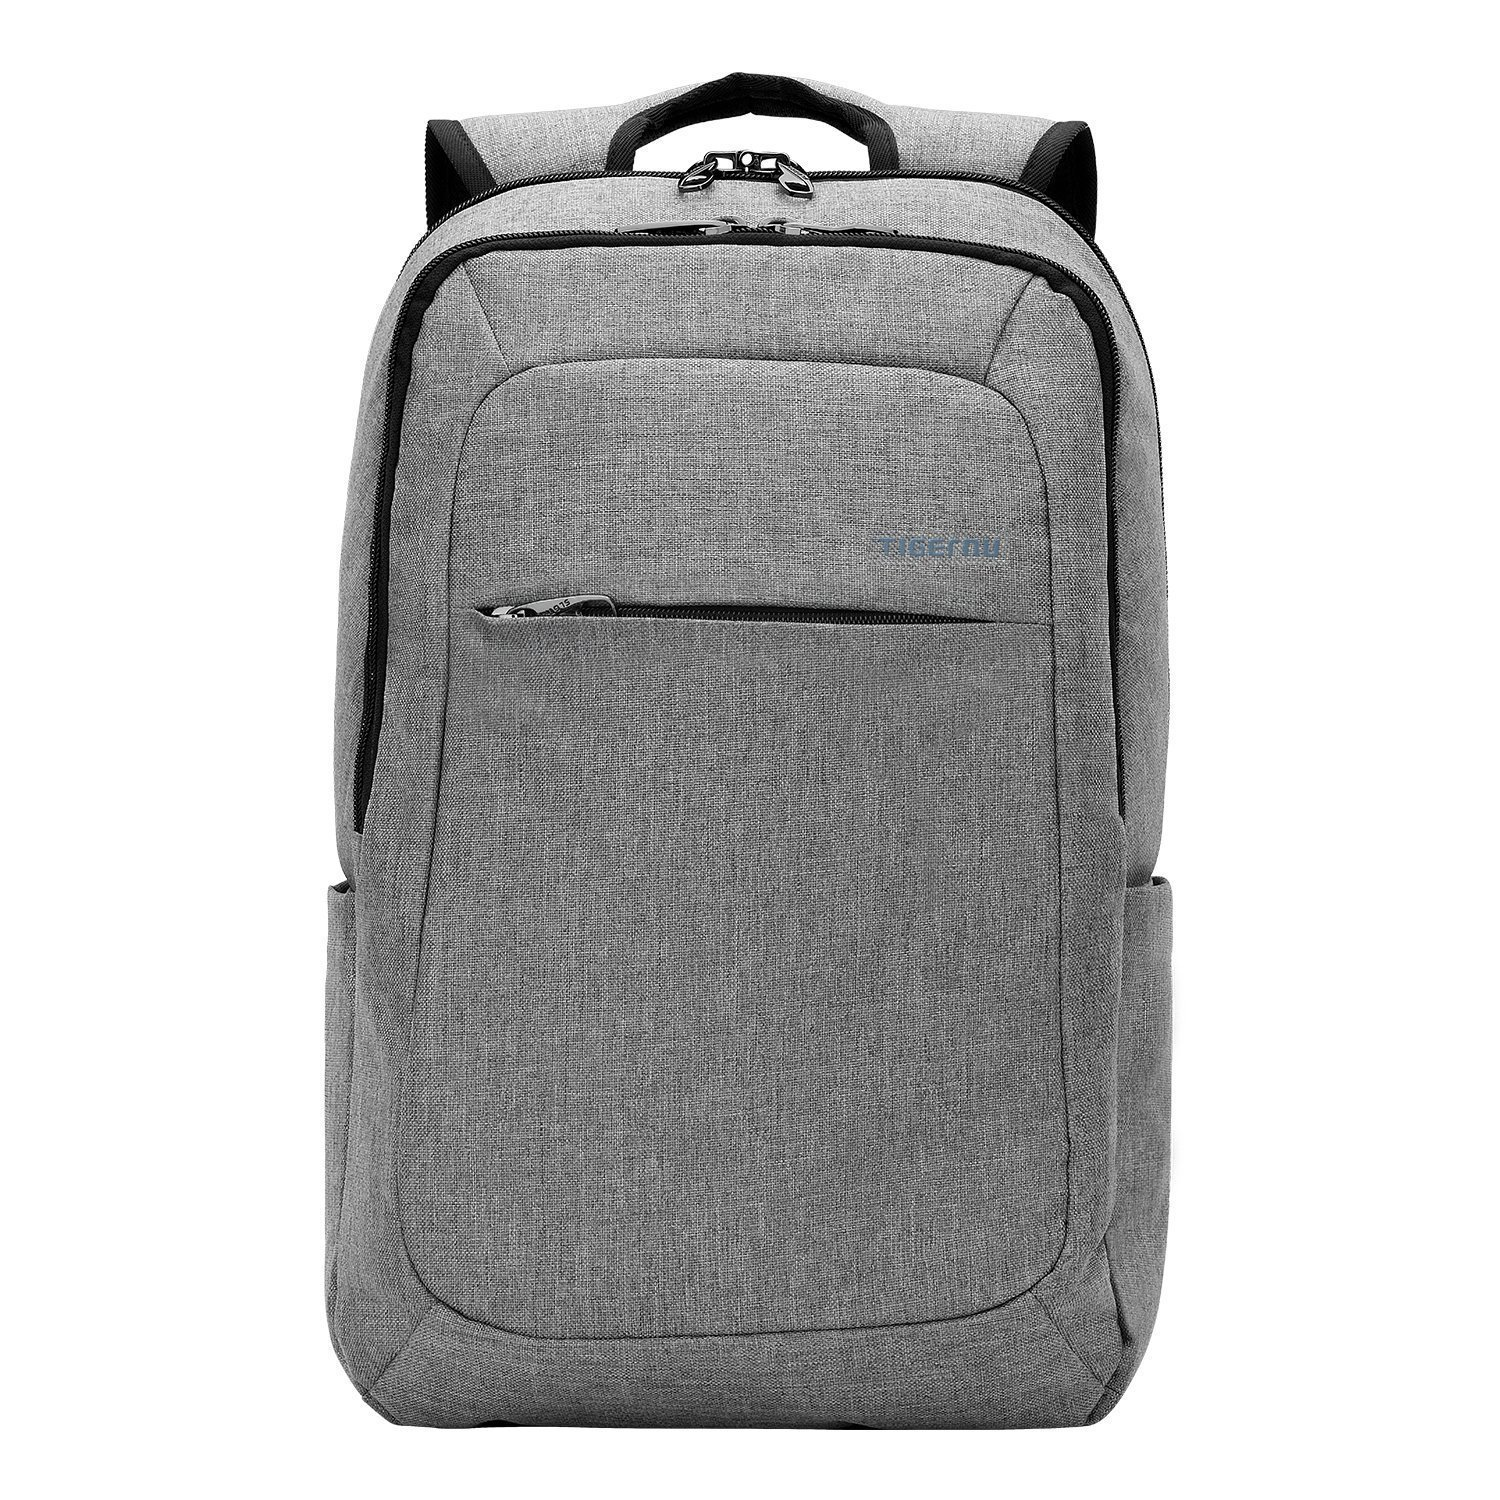 Kopack Slim Business Laptop Backpack